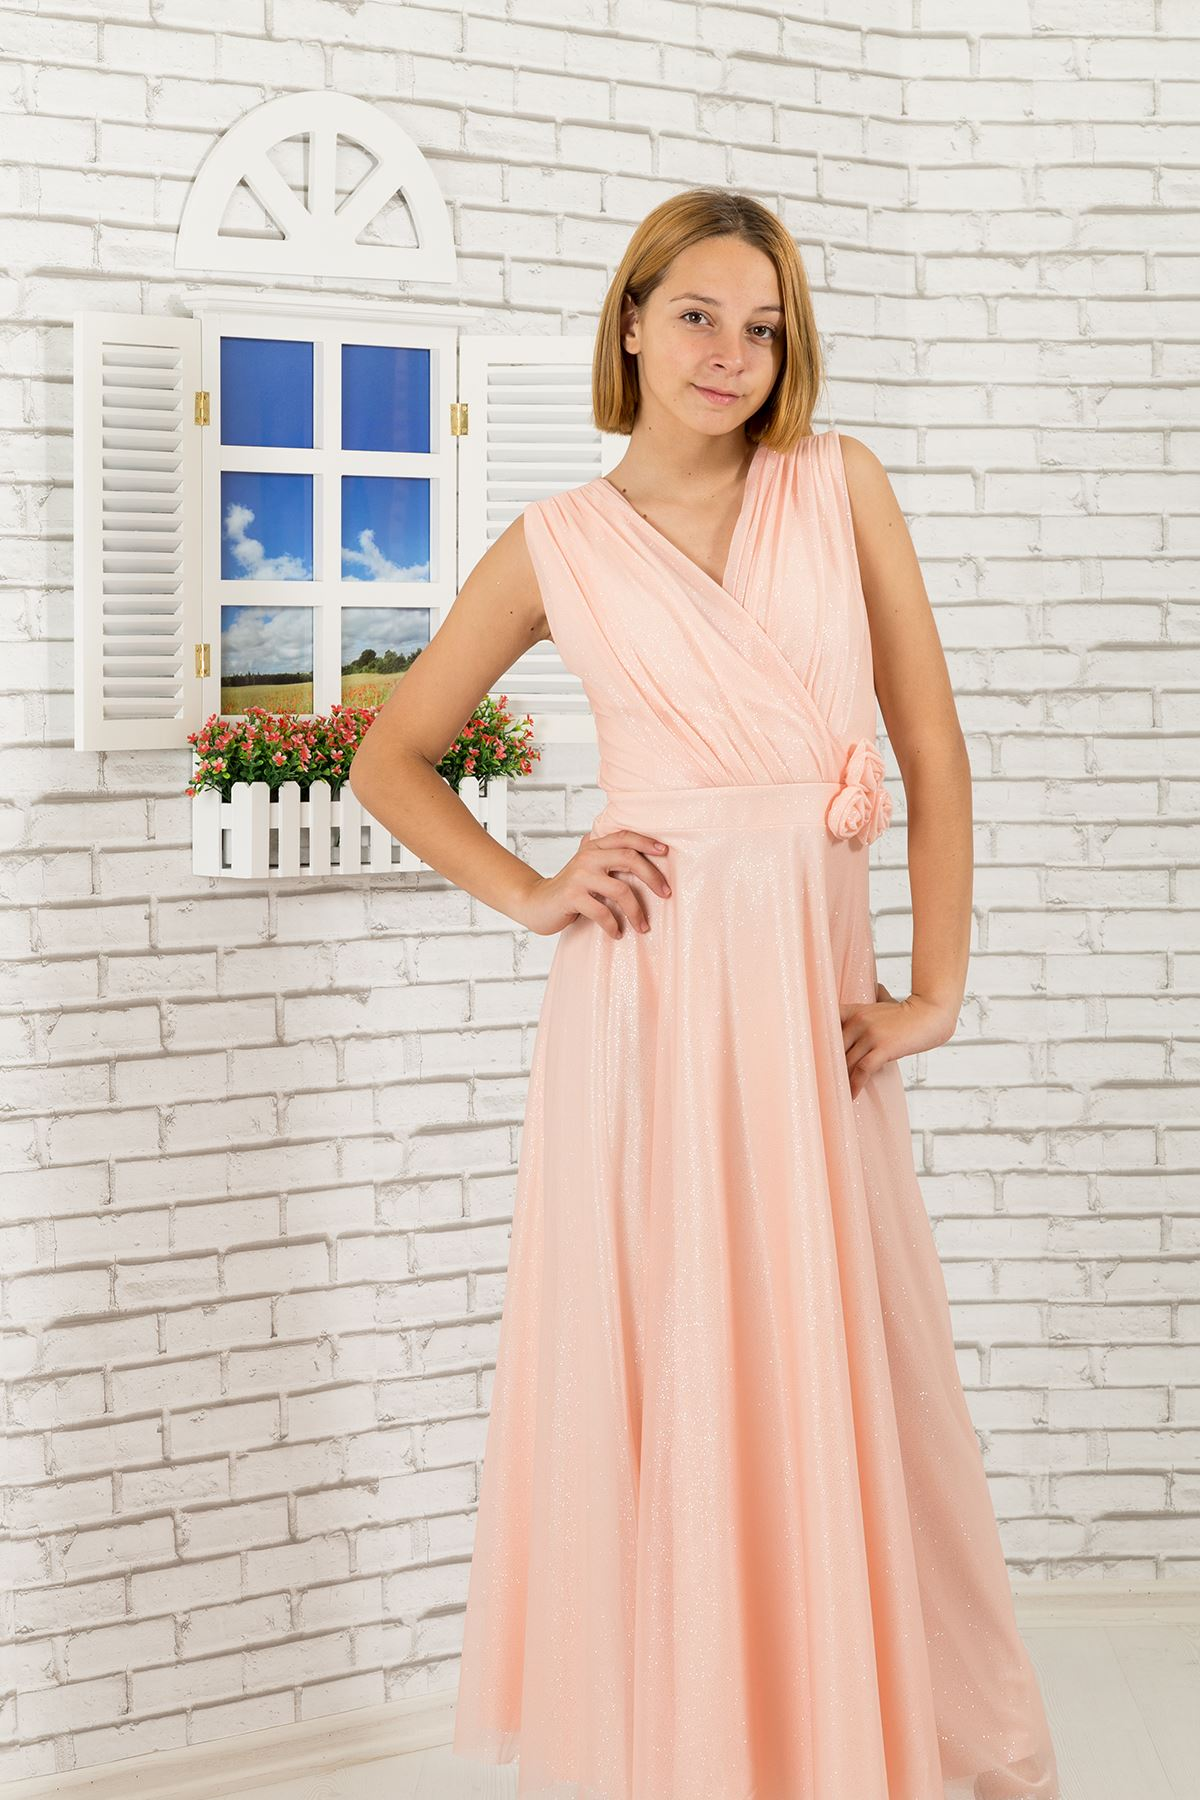 Silvery chiffon fabric, v-neck detailed Girl Evening Dress 470 Salmon